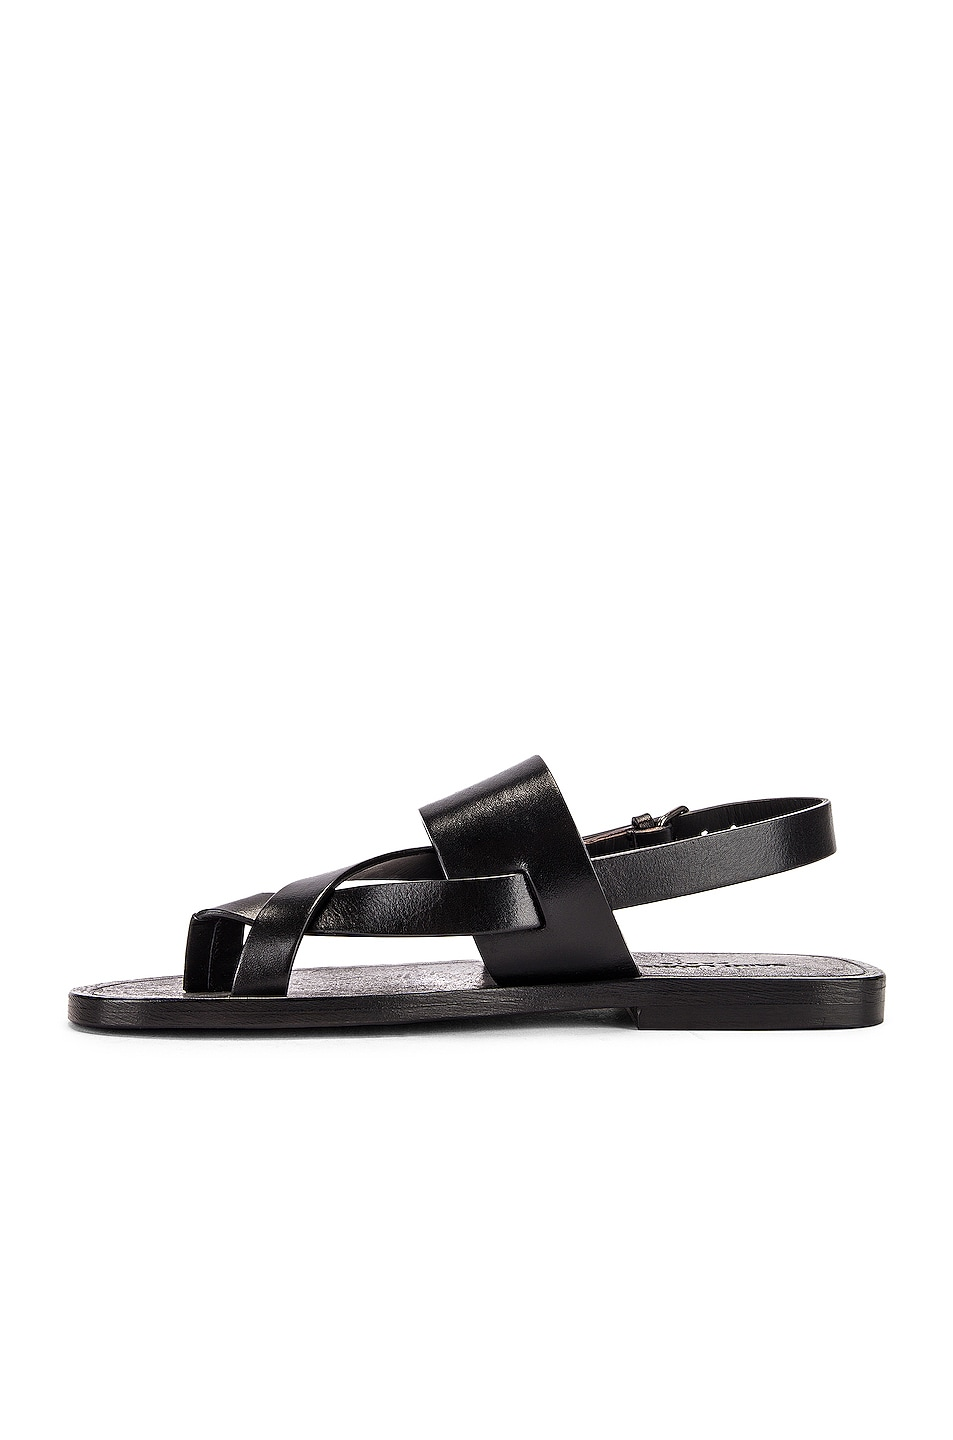 Image 5 of Saint Laurent Culver Buckle Sandals in Black